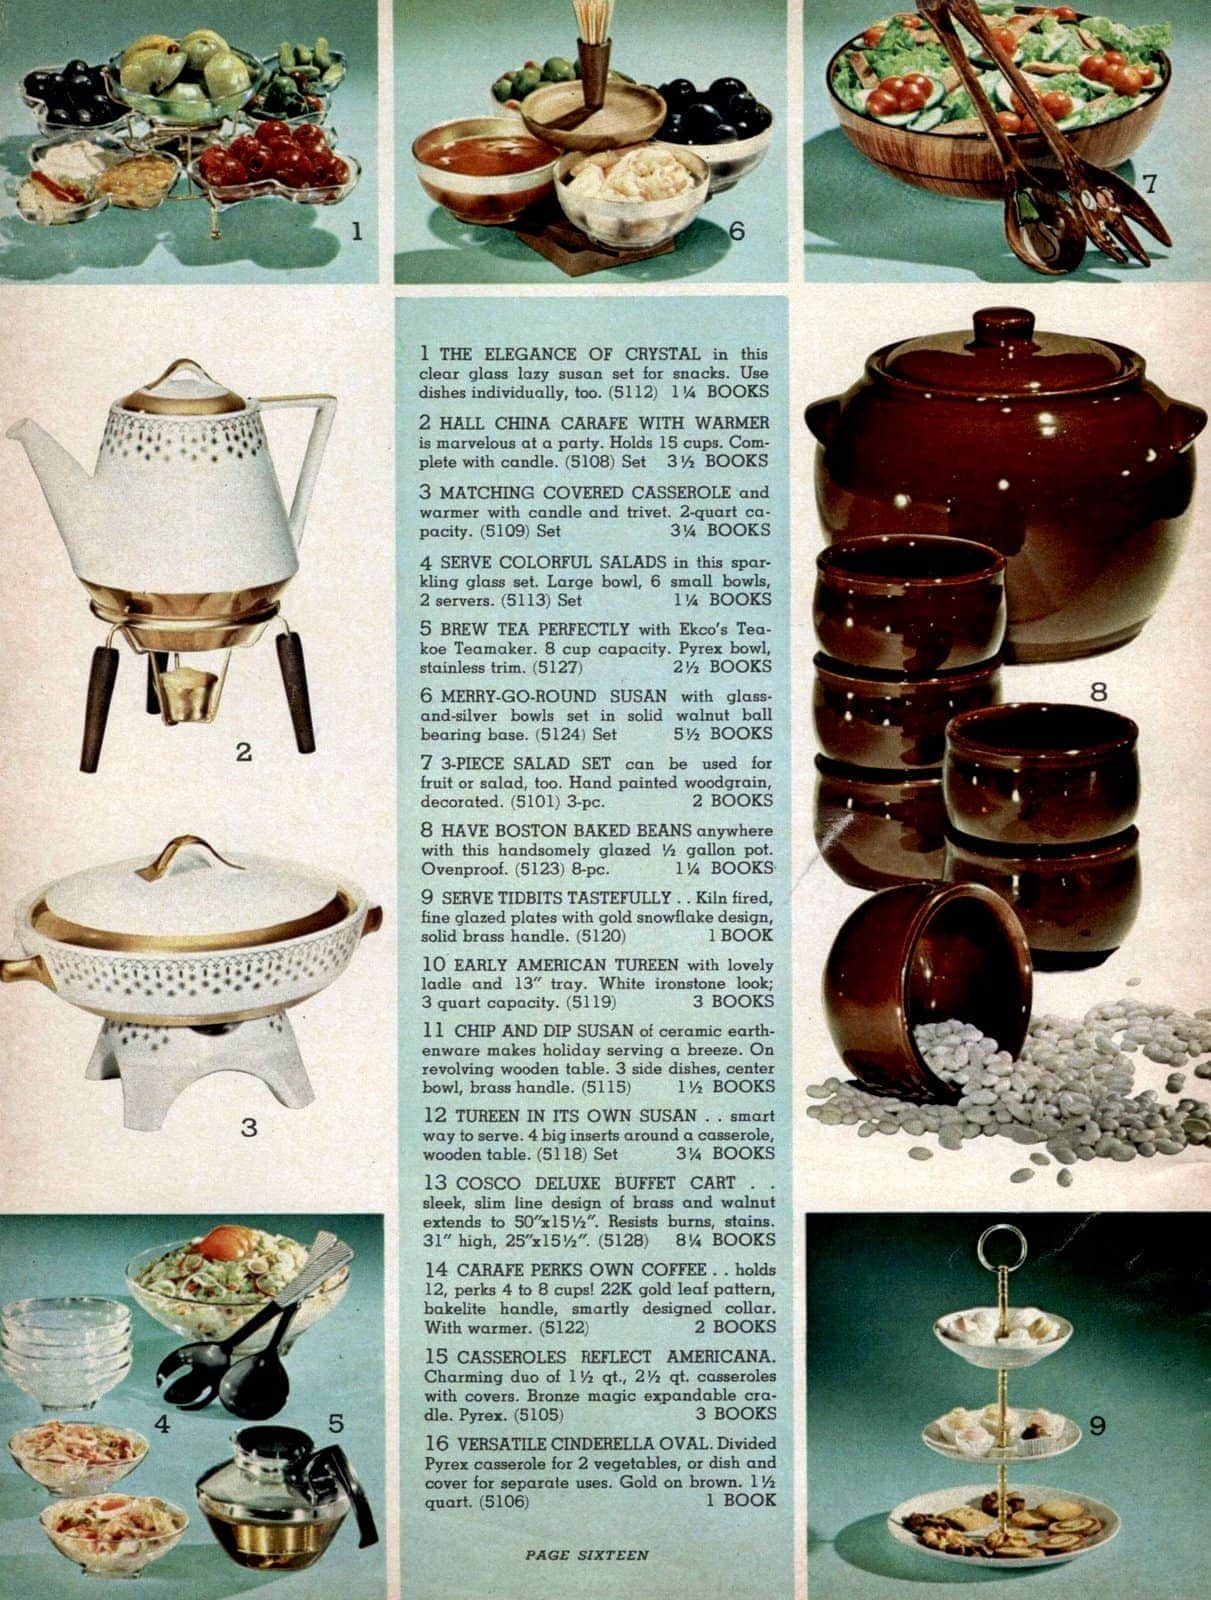 Vintage party dishes, candy dishes, tureens, crystal, carafes and more